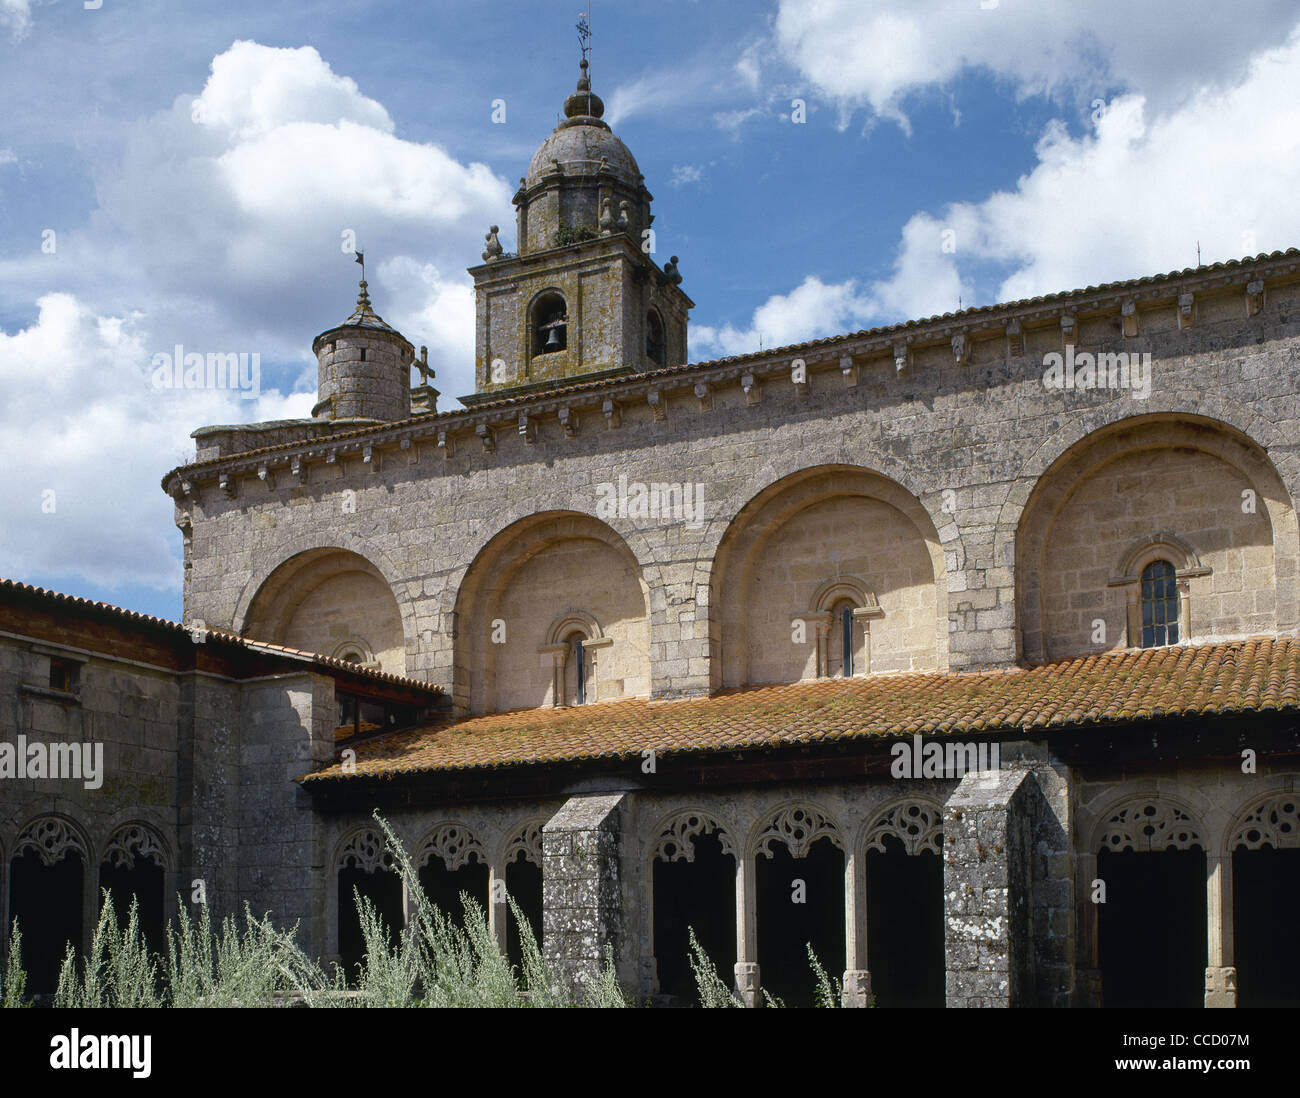 Collegiate Church of Saint Mary. Cloister. Late Gothic. 15th century. Detail. Xunqueira of Ambia. Galicia. Spain. - Stock Image